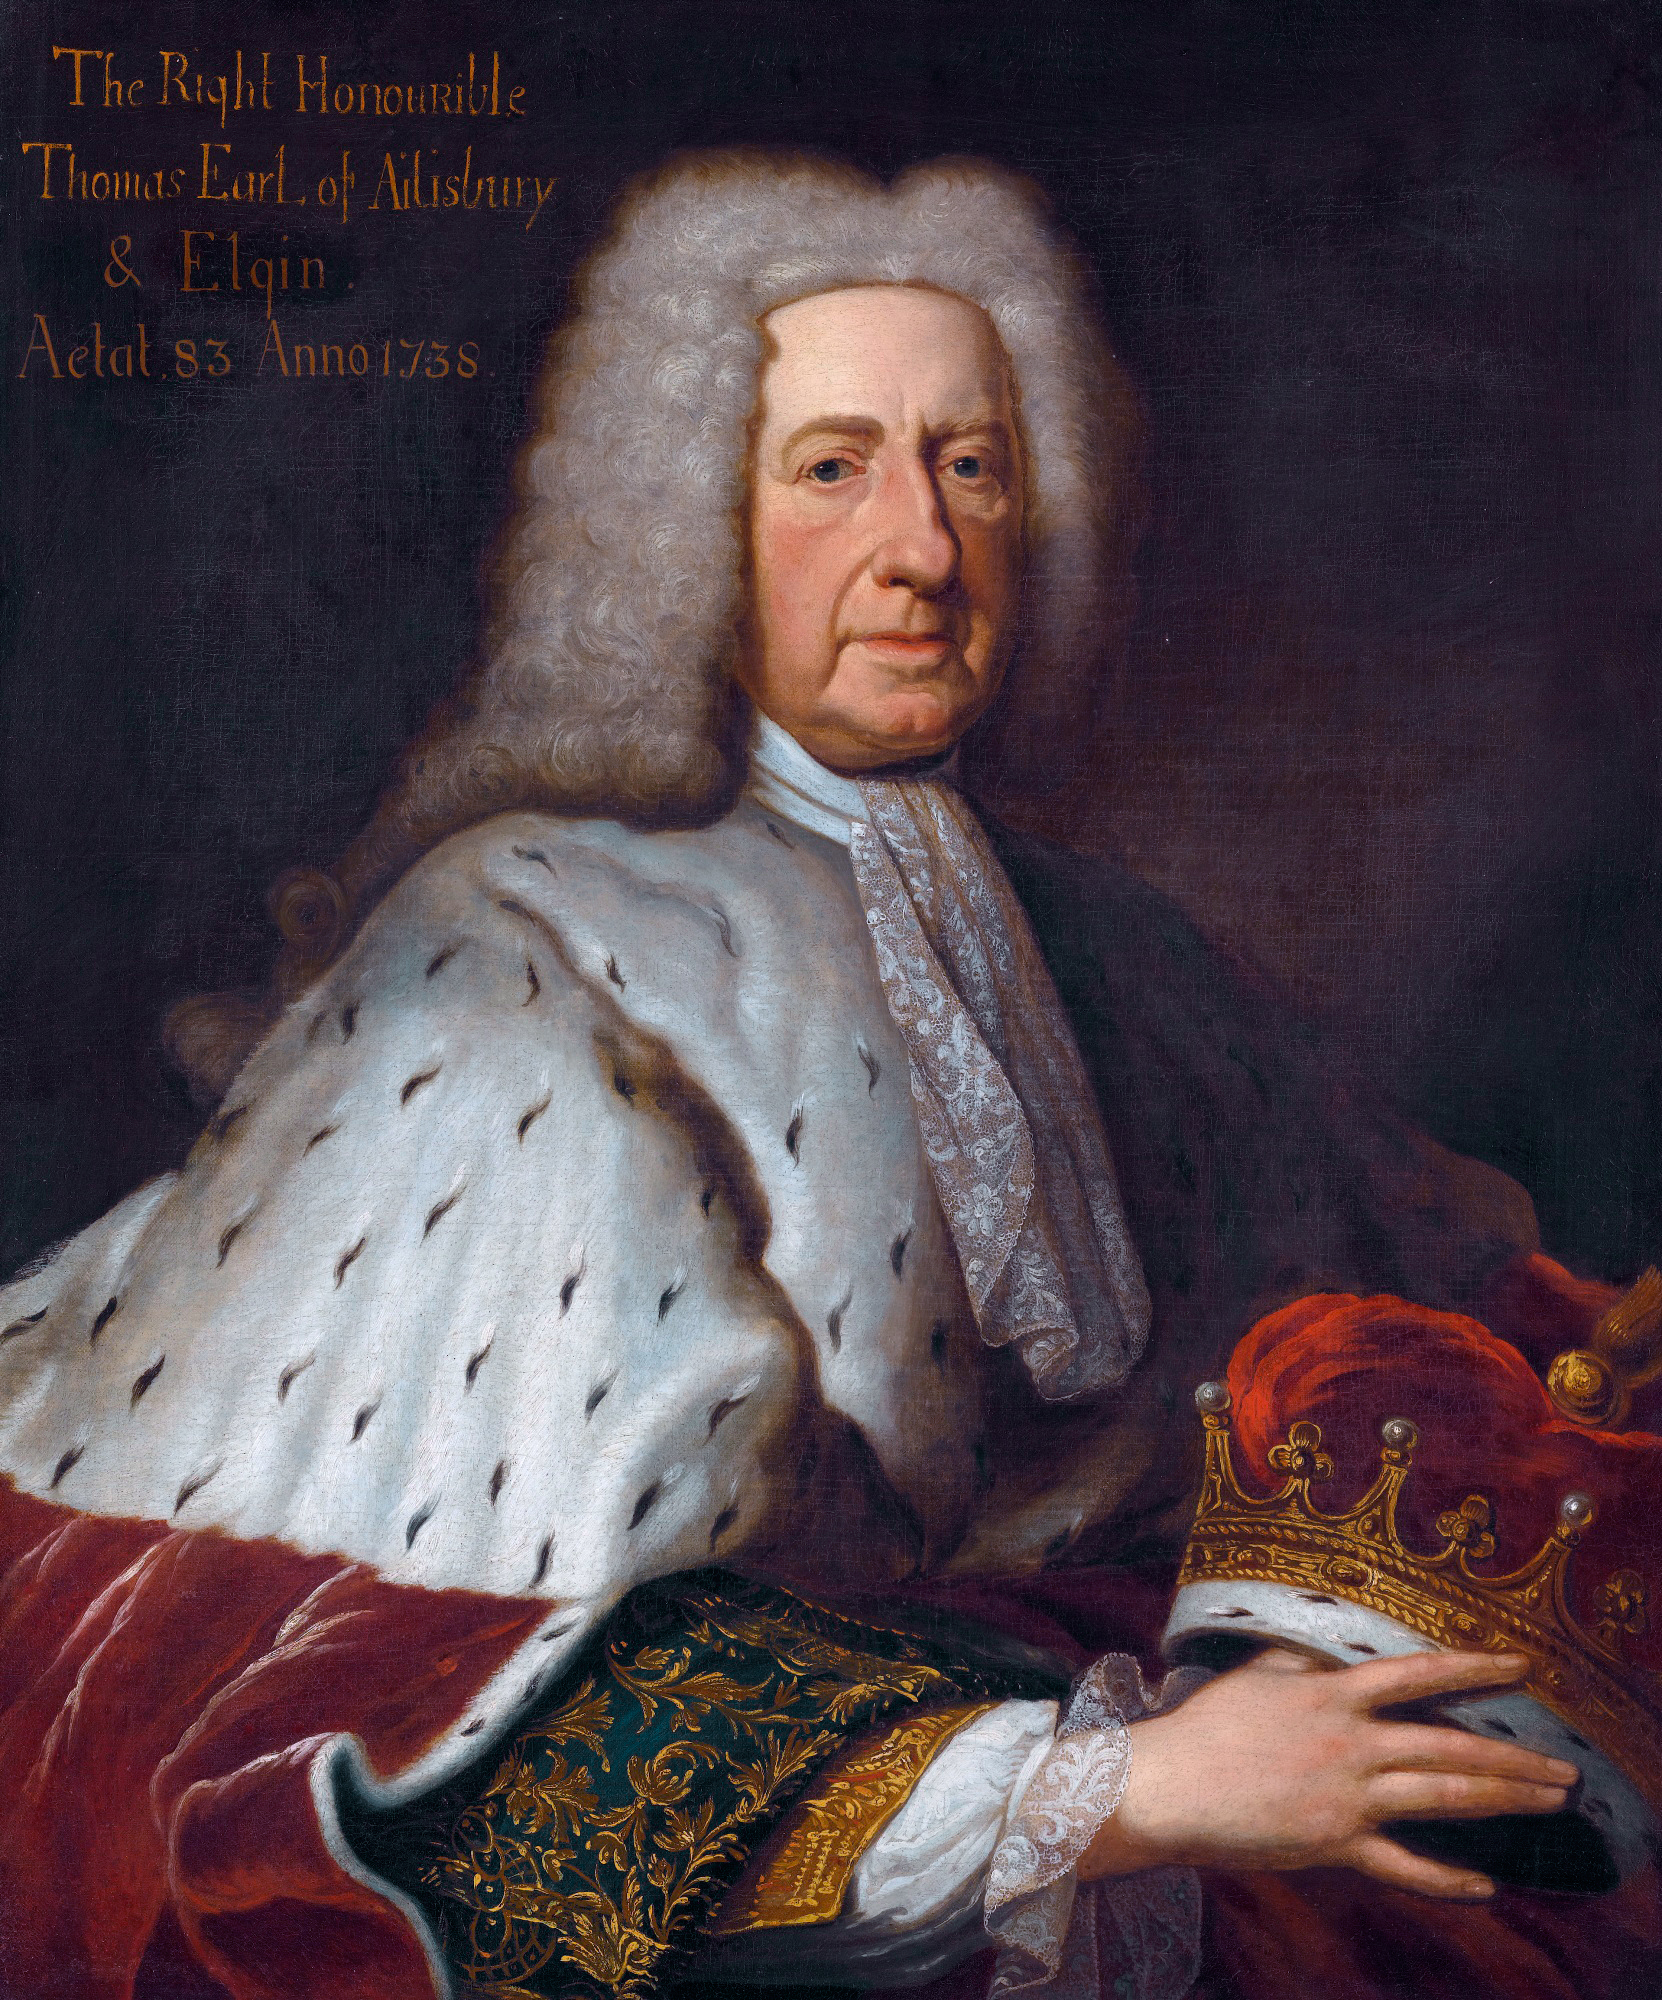 Thomas Bruce, 2nd Earl of Ailesbury and 3rd Earl of Elgin